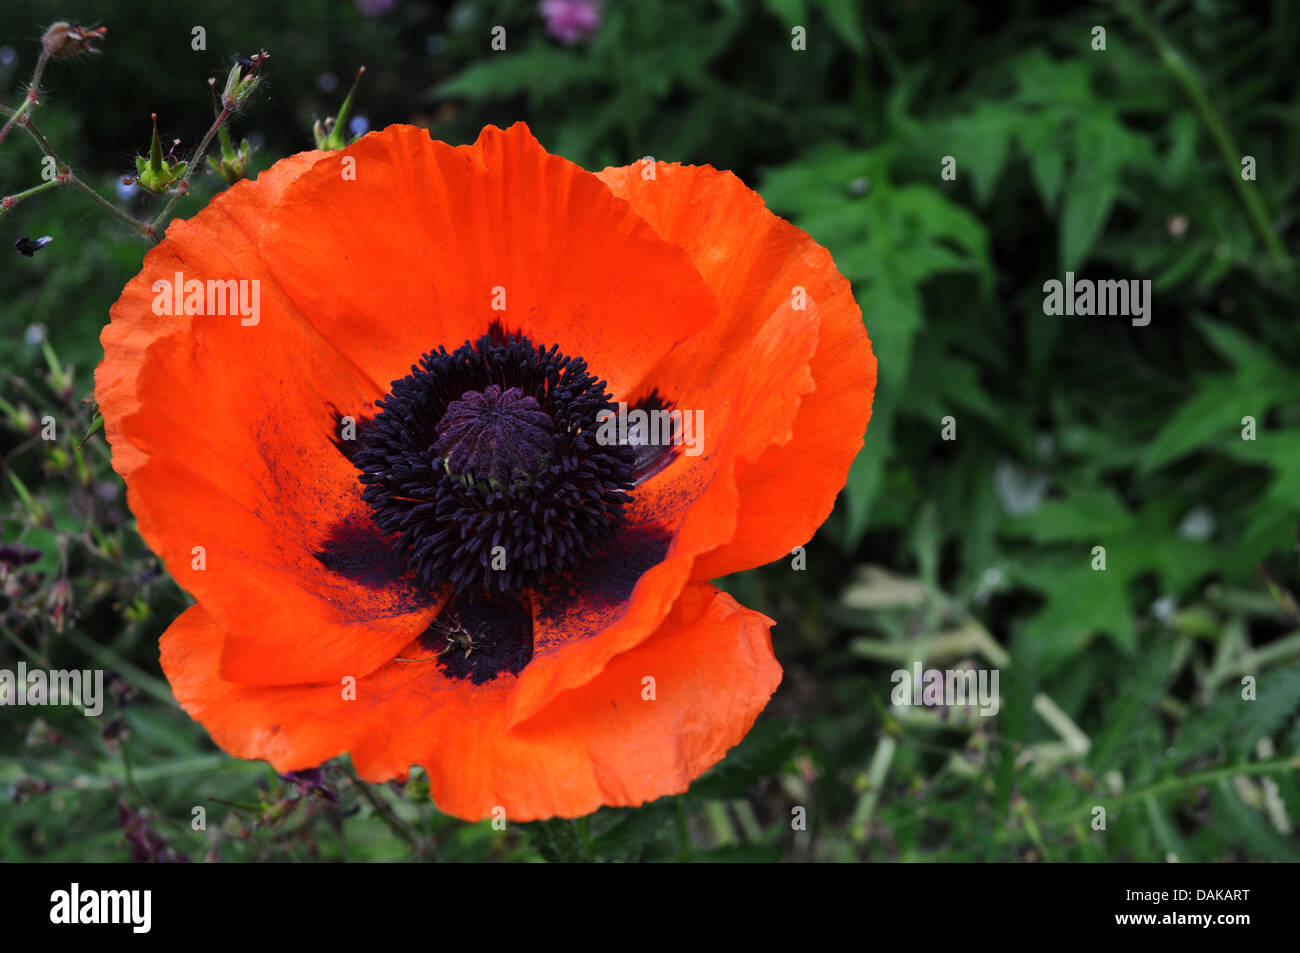 Large Red And Orange Poppy Flower In A Garden Stock Photo 58203260